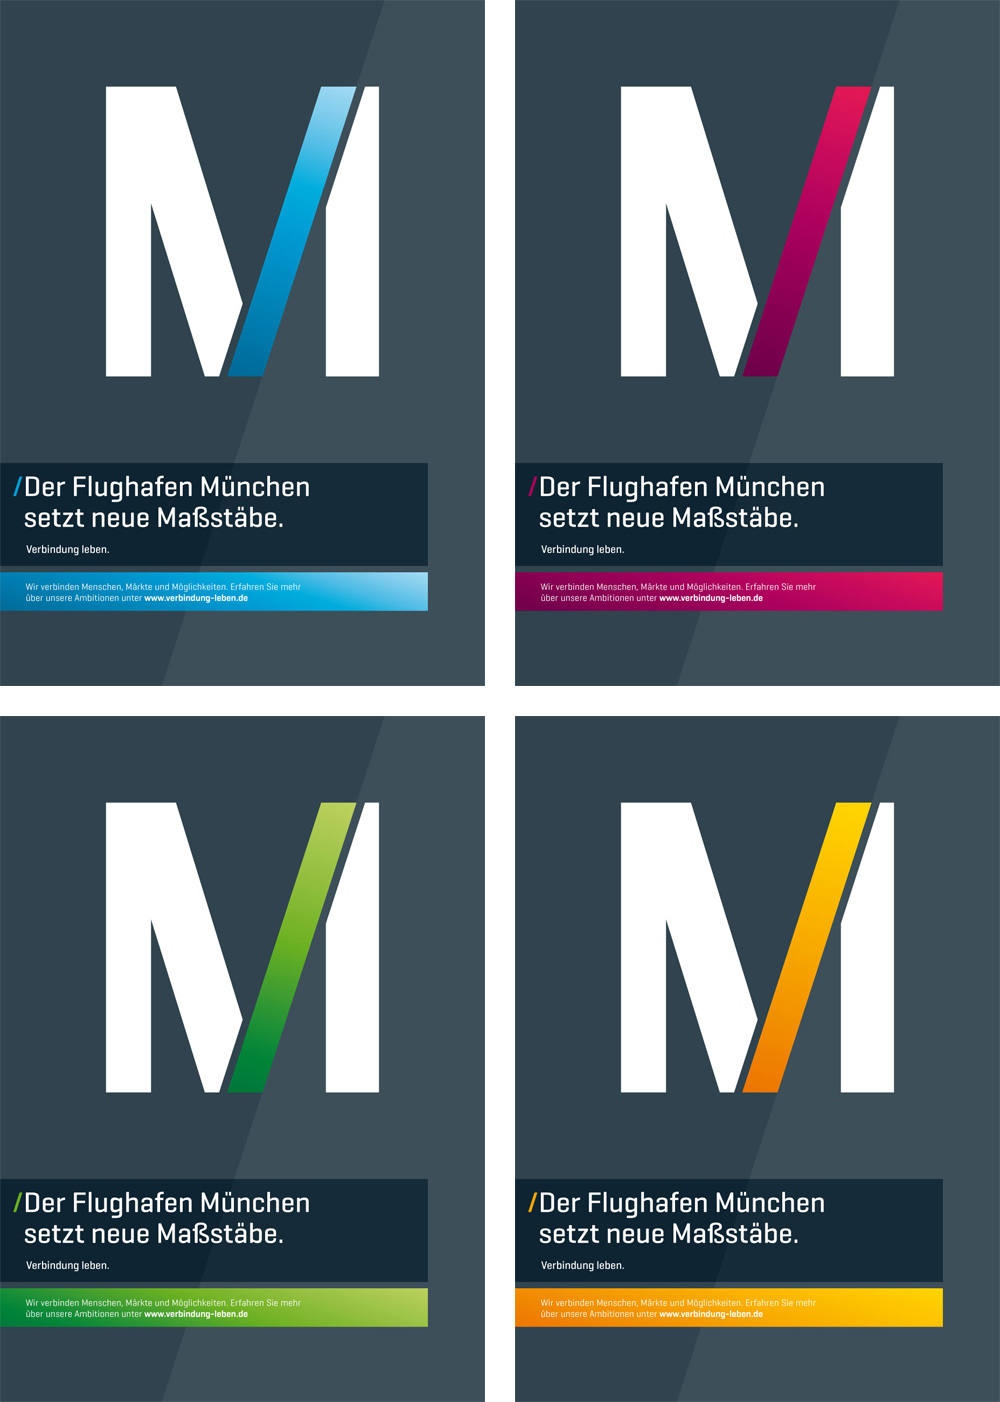 New Logo and Identity for Munich Airport by Interbrand